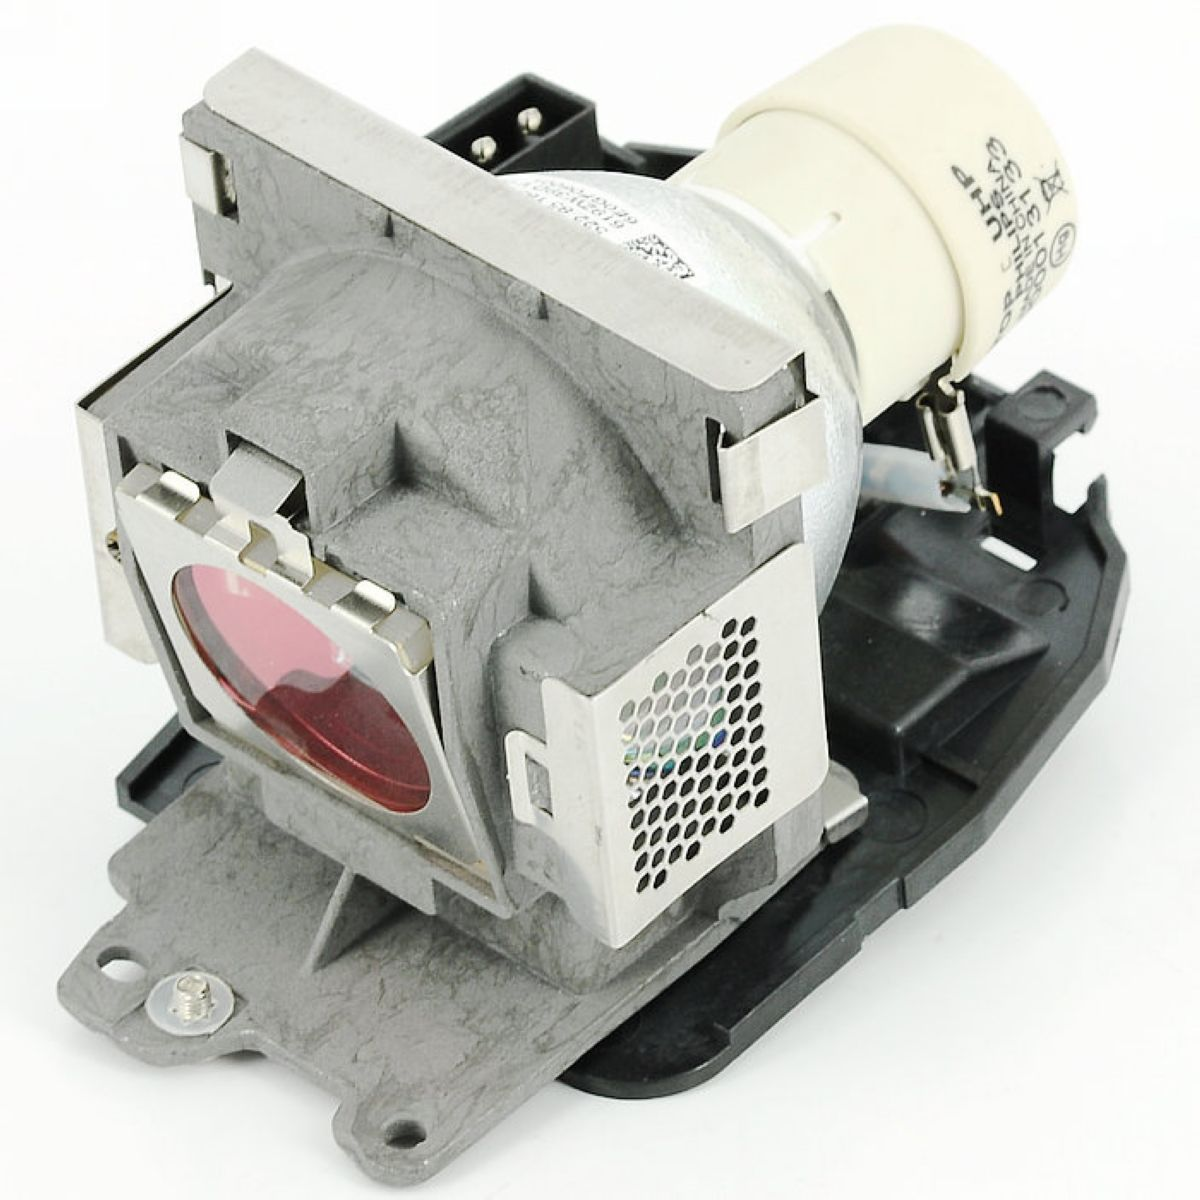 5J.06001.001   for  MP612 MP612C MP622 MP622C  Original Lamp with Housing  Free shipping 100% new original bare projector lamp 5j 06001 001 for mp622c mp612 mp612c mp622